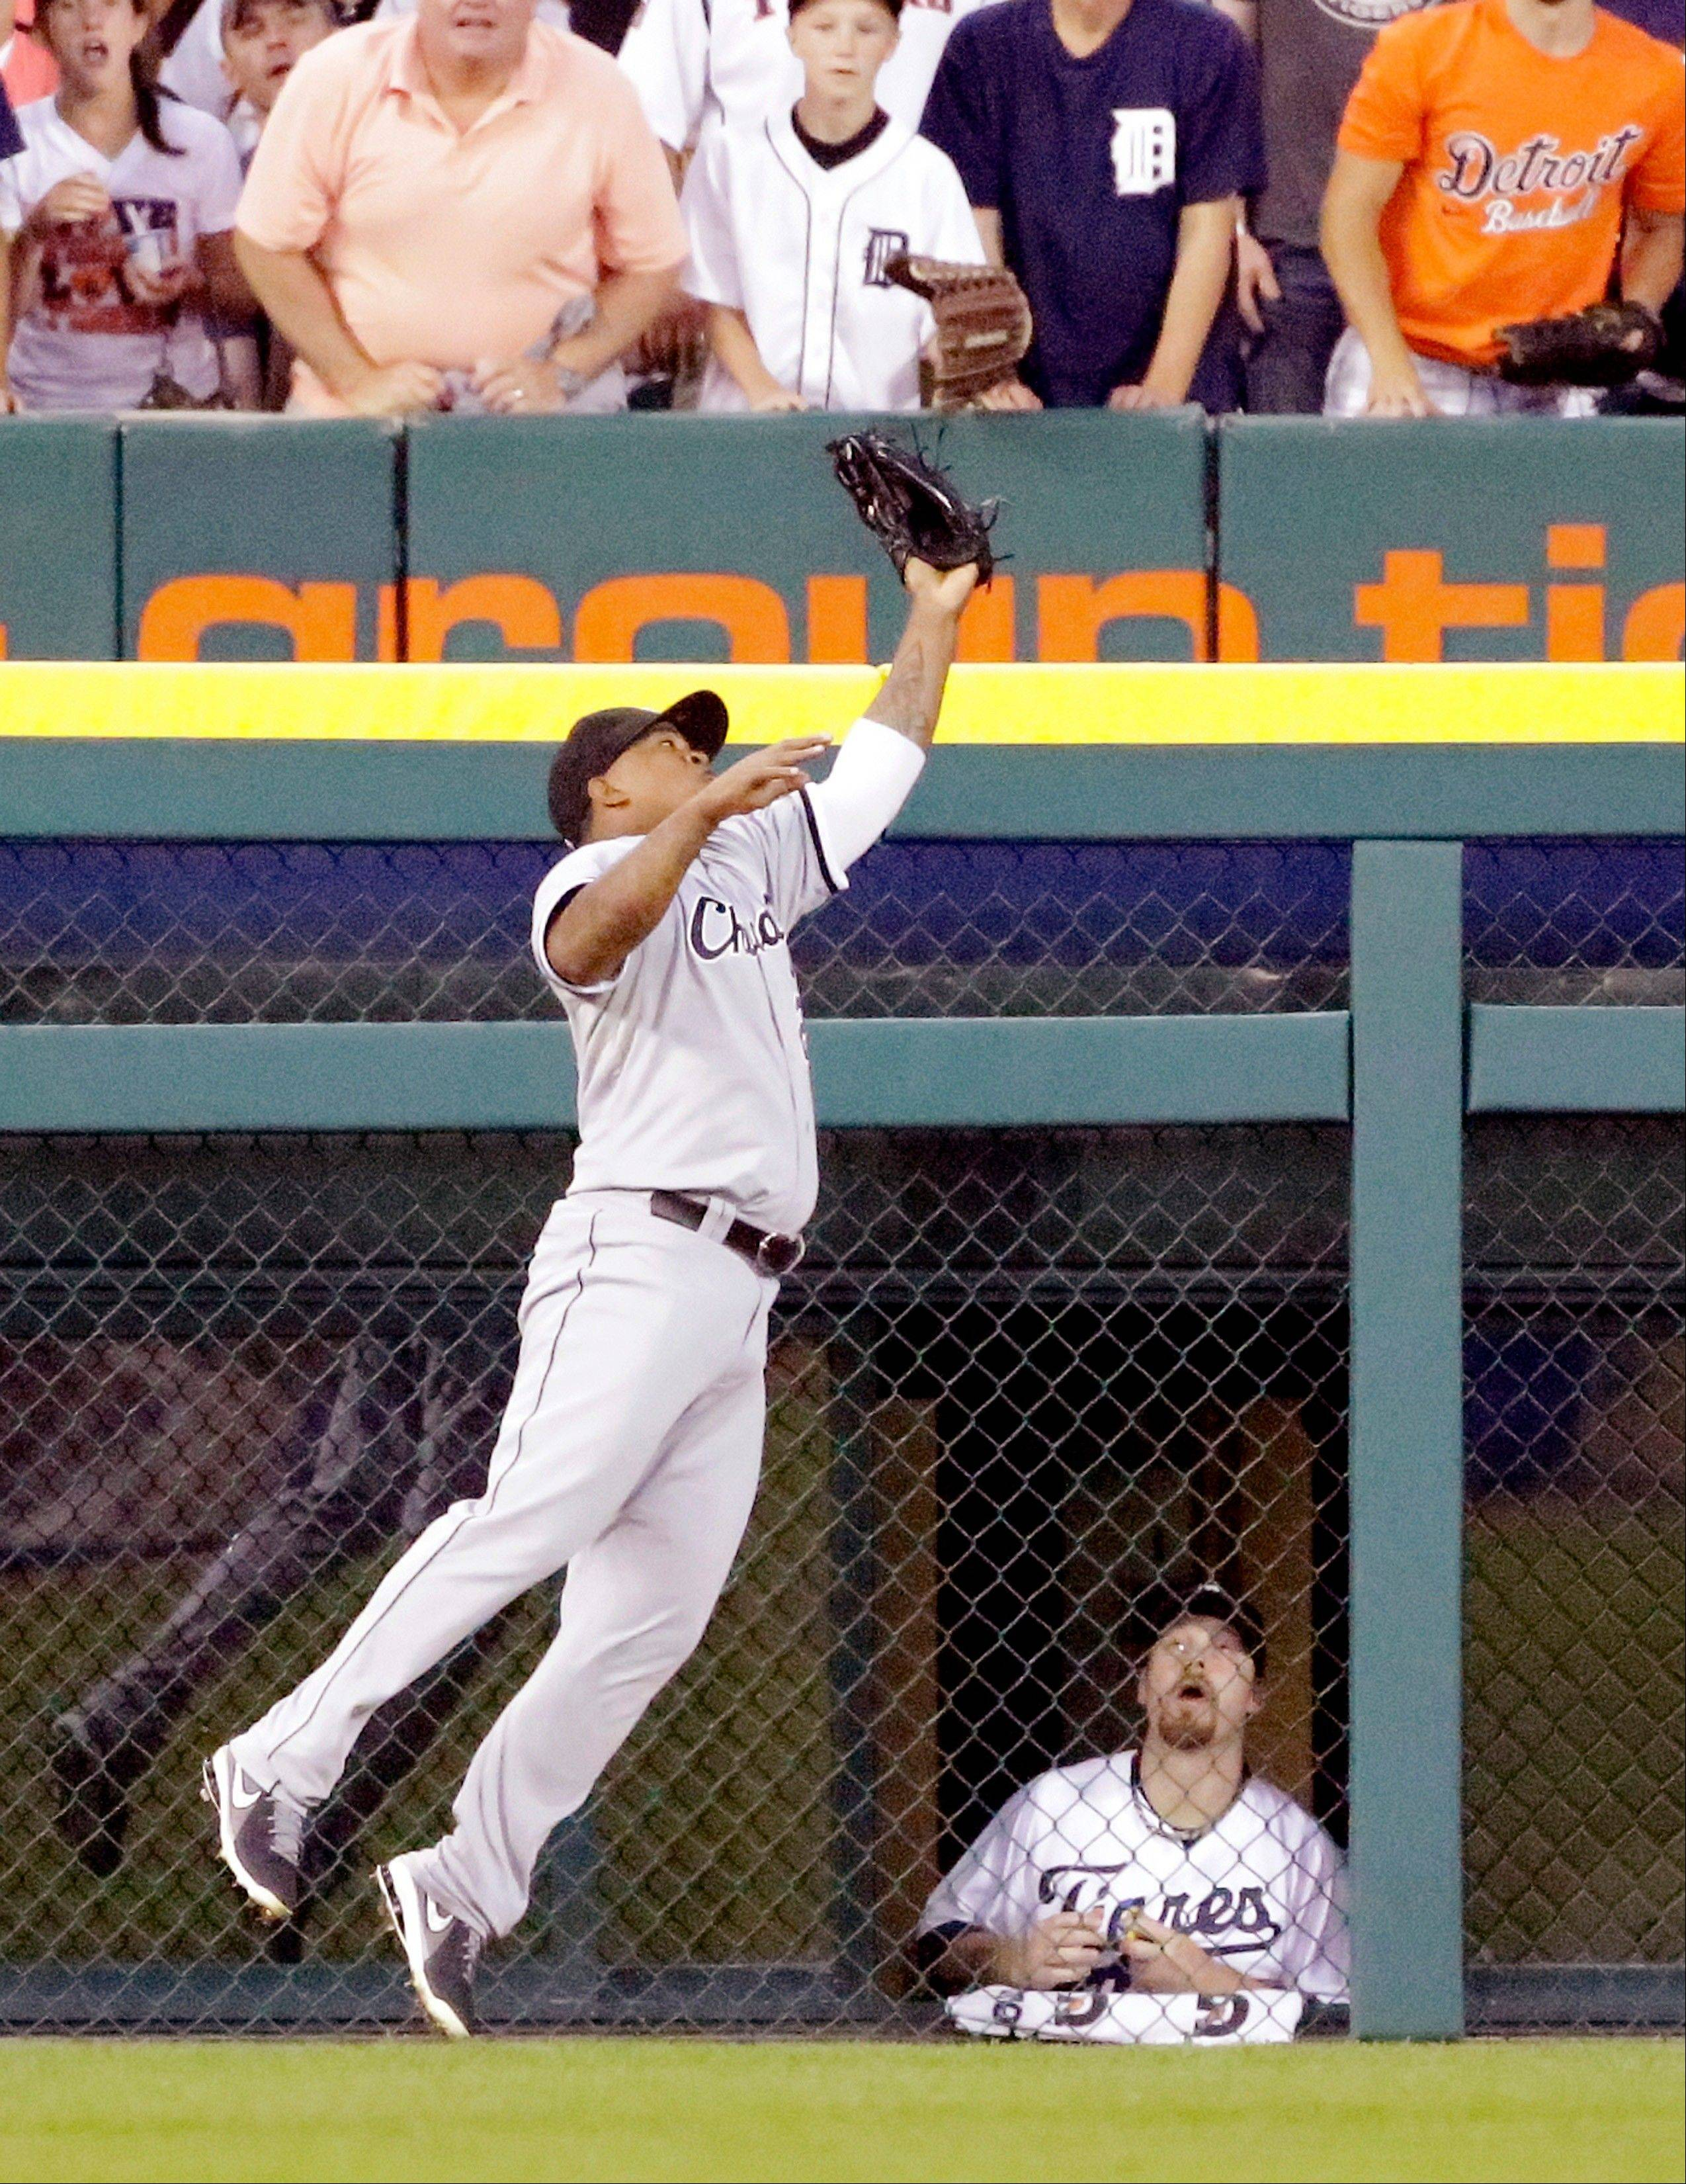 Detroit Tigers relief pitcher Phil Coke, lower right, watches as Chicago White Sox left fielder Dayan Viciedo catches the a long fly ball hit by Tigers designated hitter Victor Martinez during the sixth inning of a baseball game in Detroit, Saturday, Aug. 3, 2013. (AP Photo/Carlos Osorio)